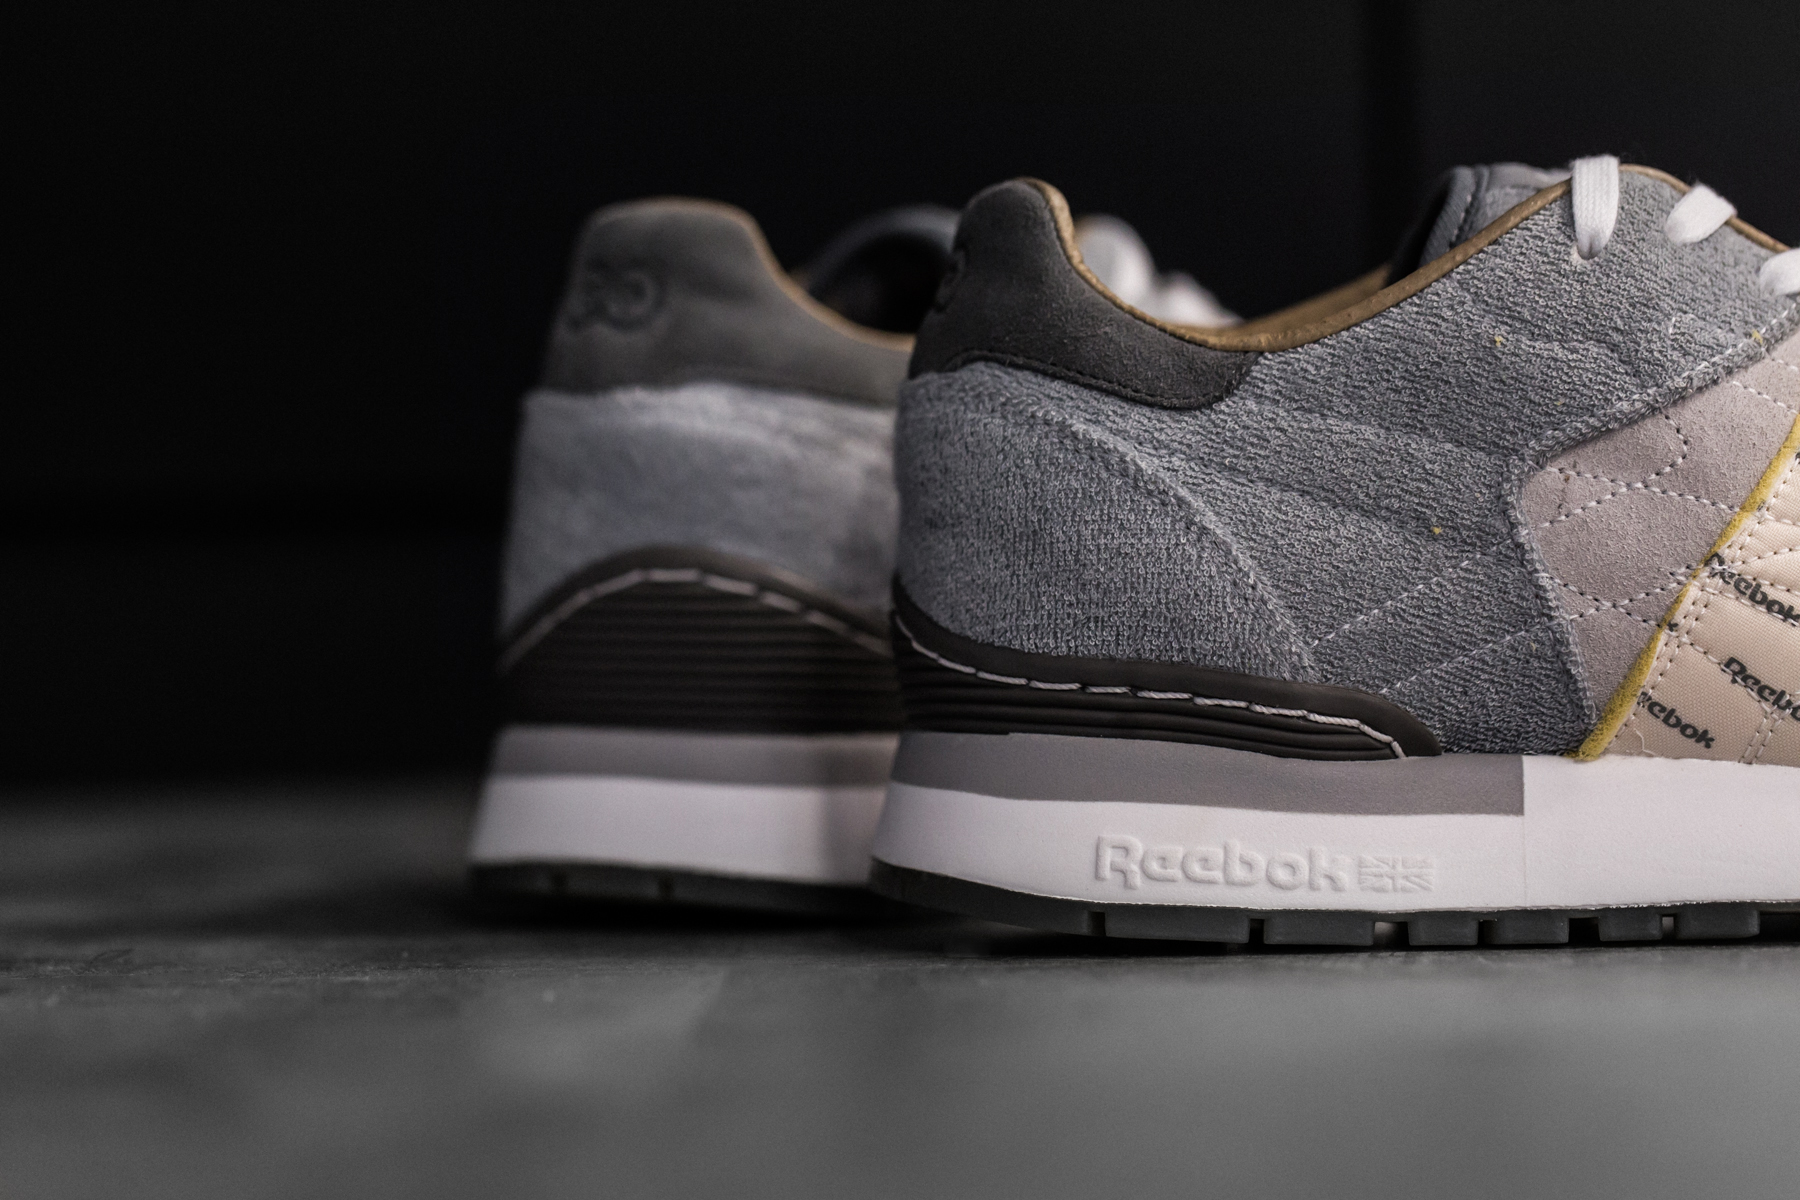 garbstore x reebok 2014 fall winter cl leather 6000